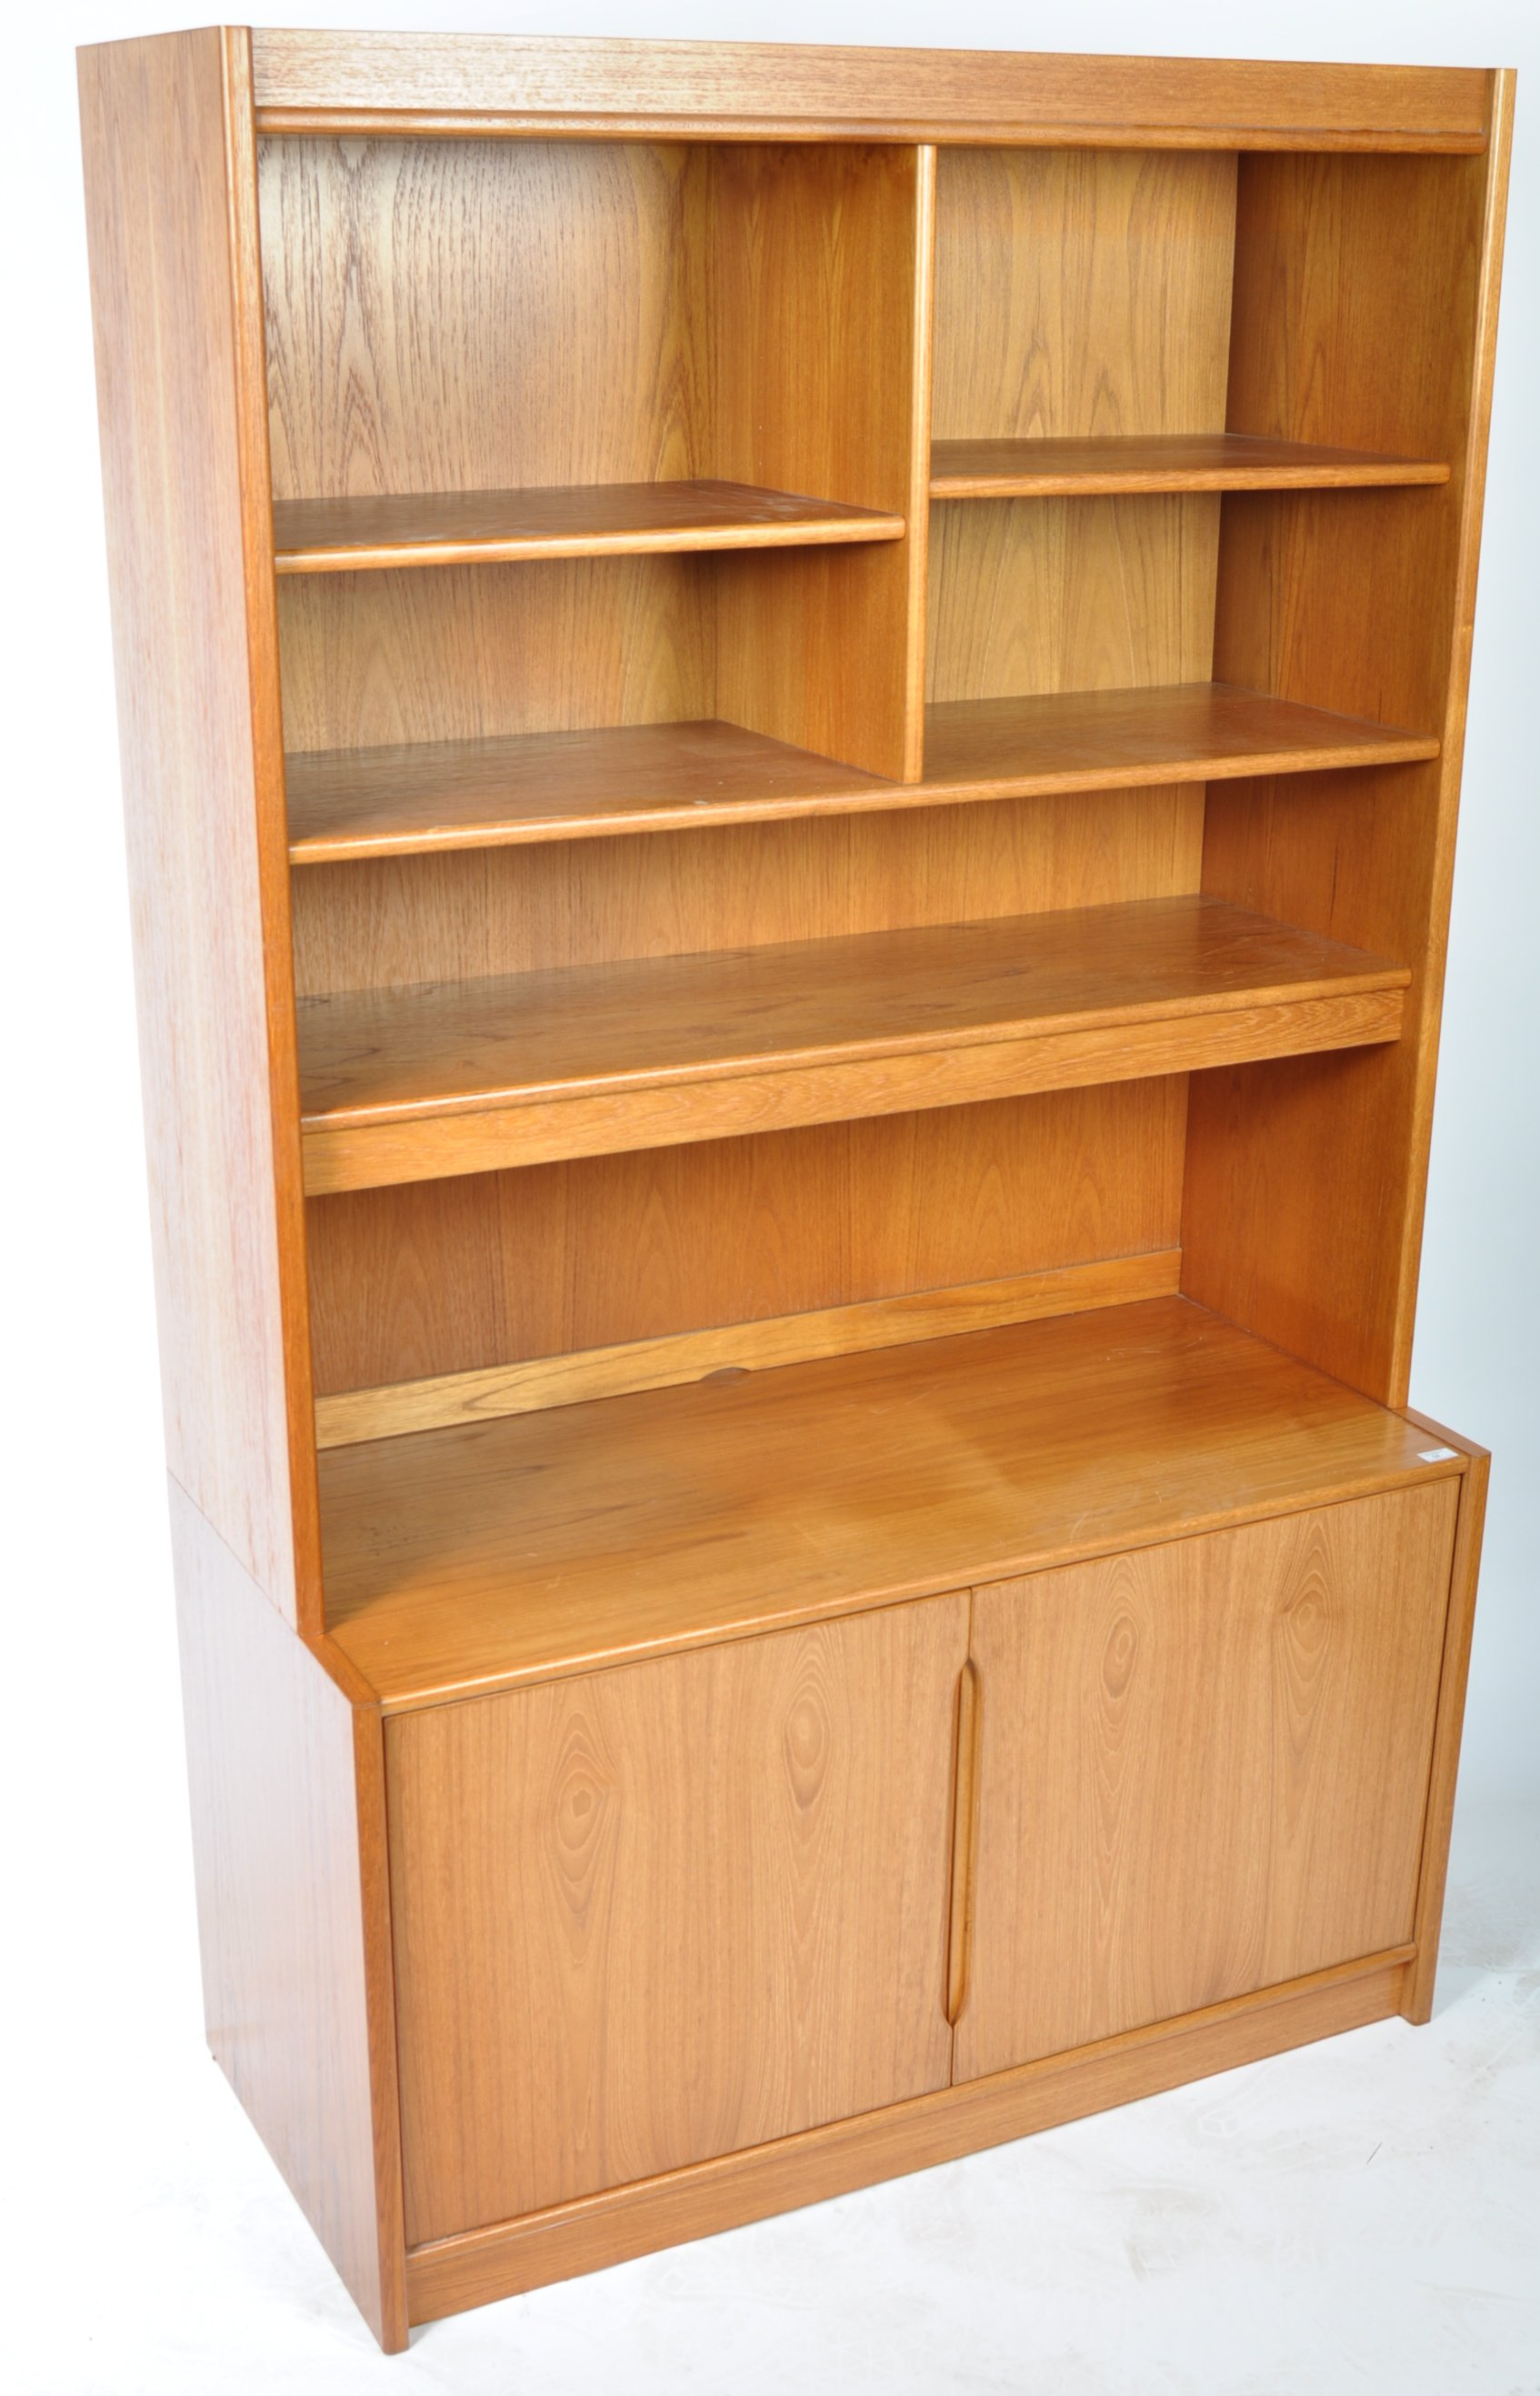 Lot 54 - QUALITY MID CENTURY TEAK ROOM UNIT IN THE MANNER OF POUL HUNDEVAD